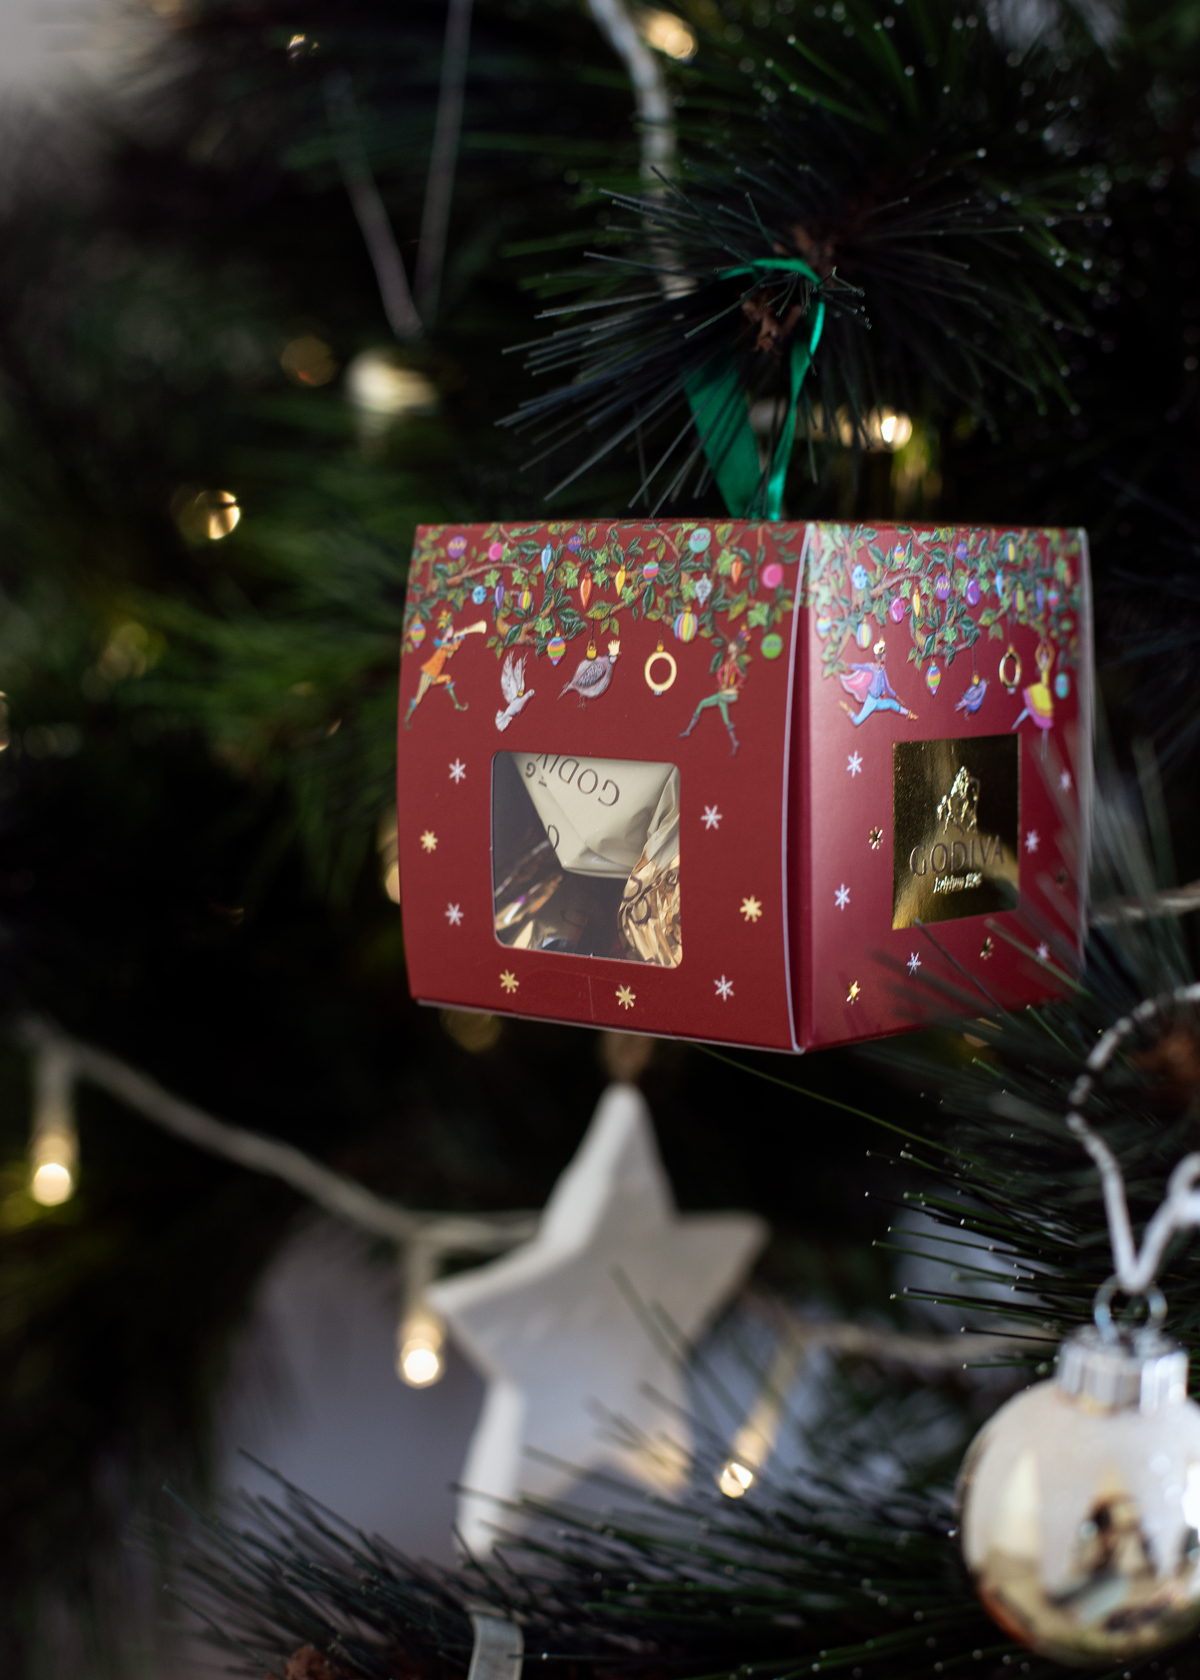 2018 Christmas gift guide Inspiring Wit blog featuring men's or women's gifts Godiva Chocolates box bauble